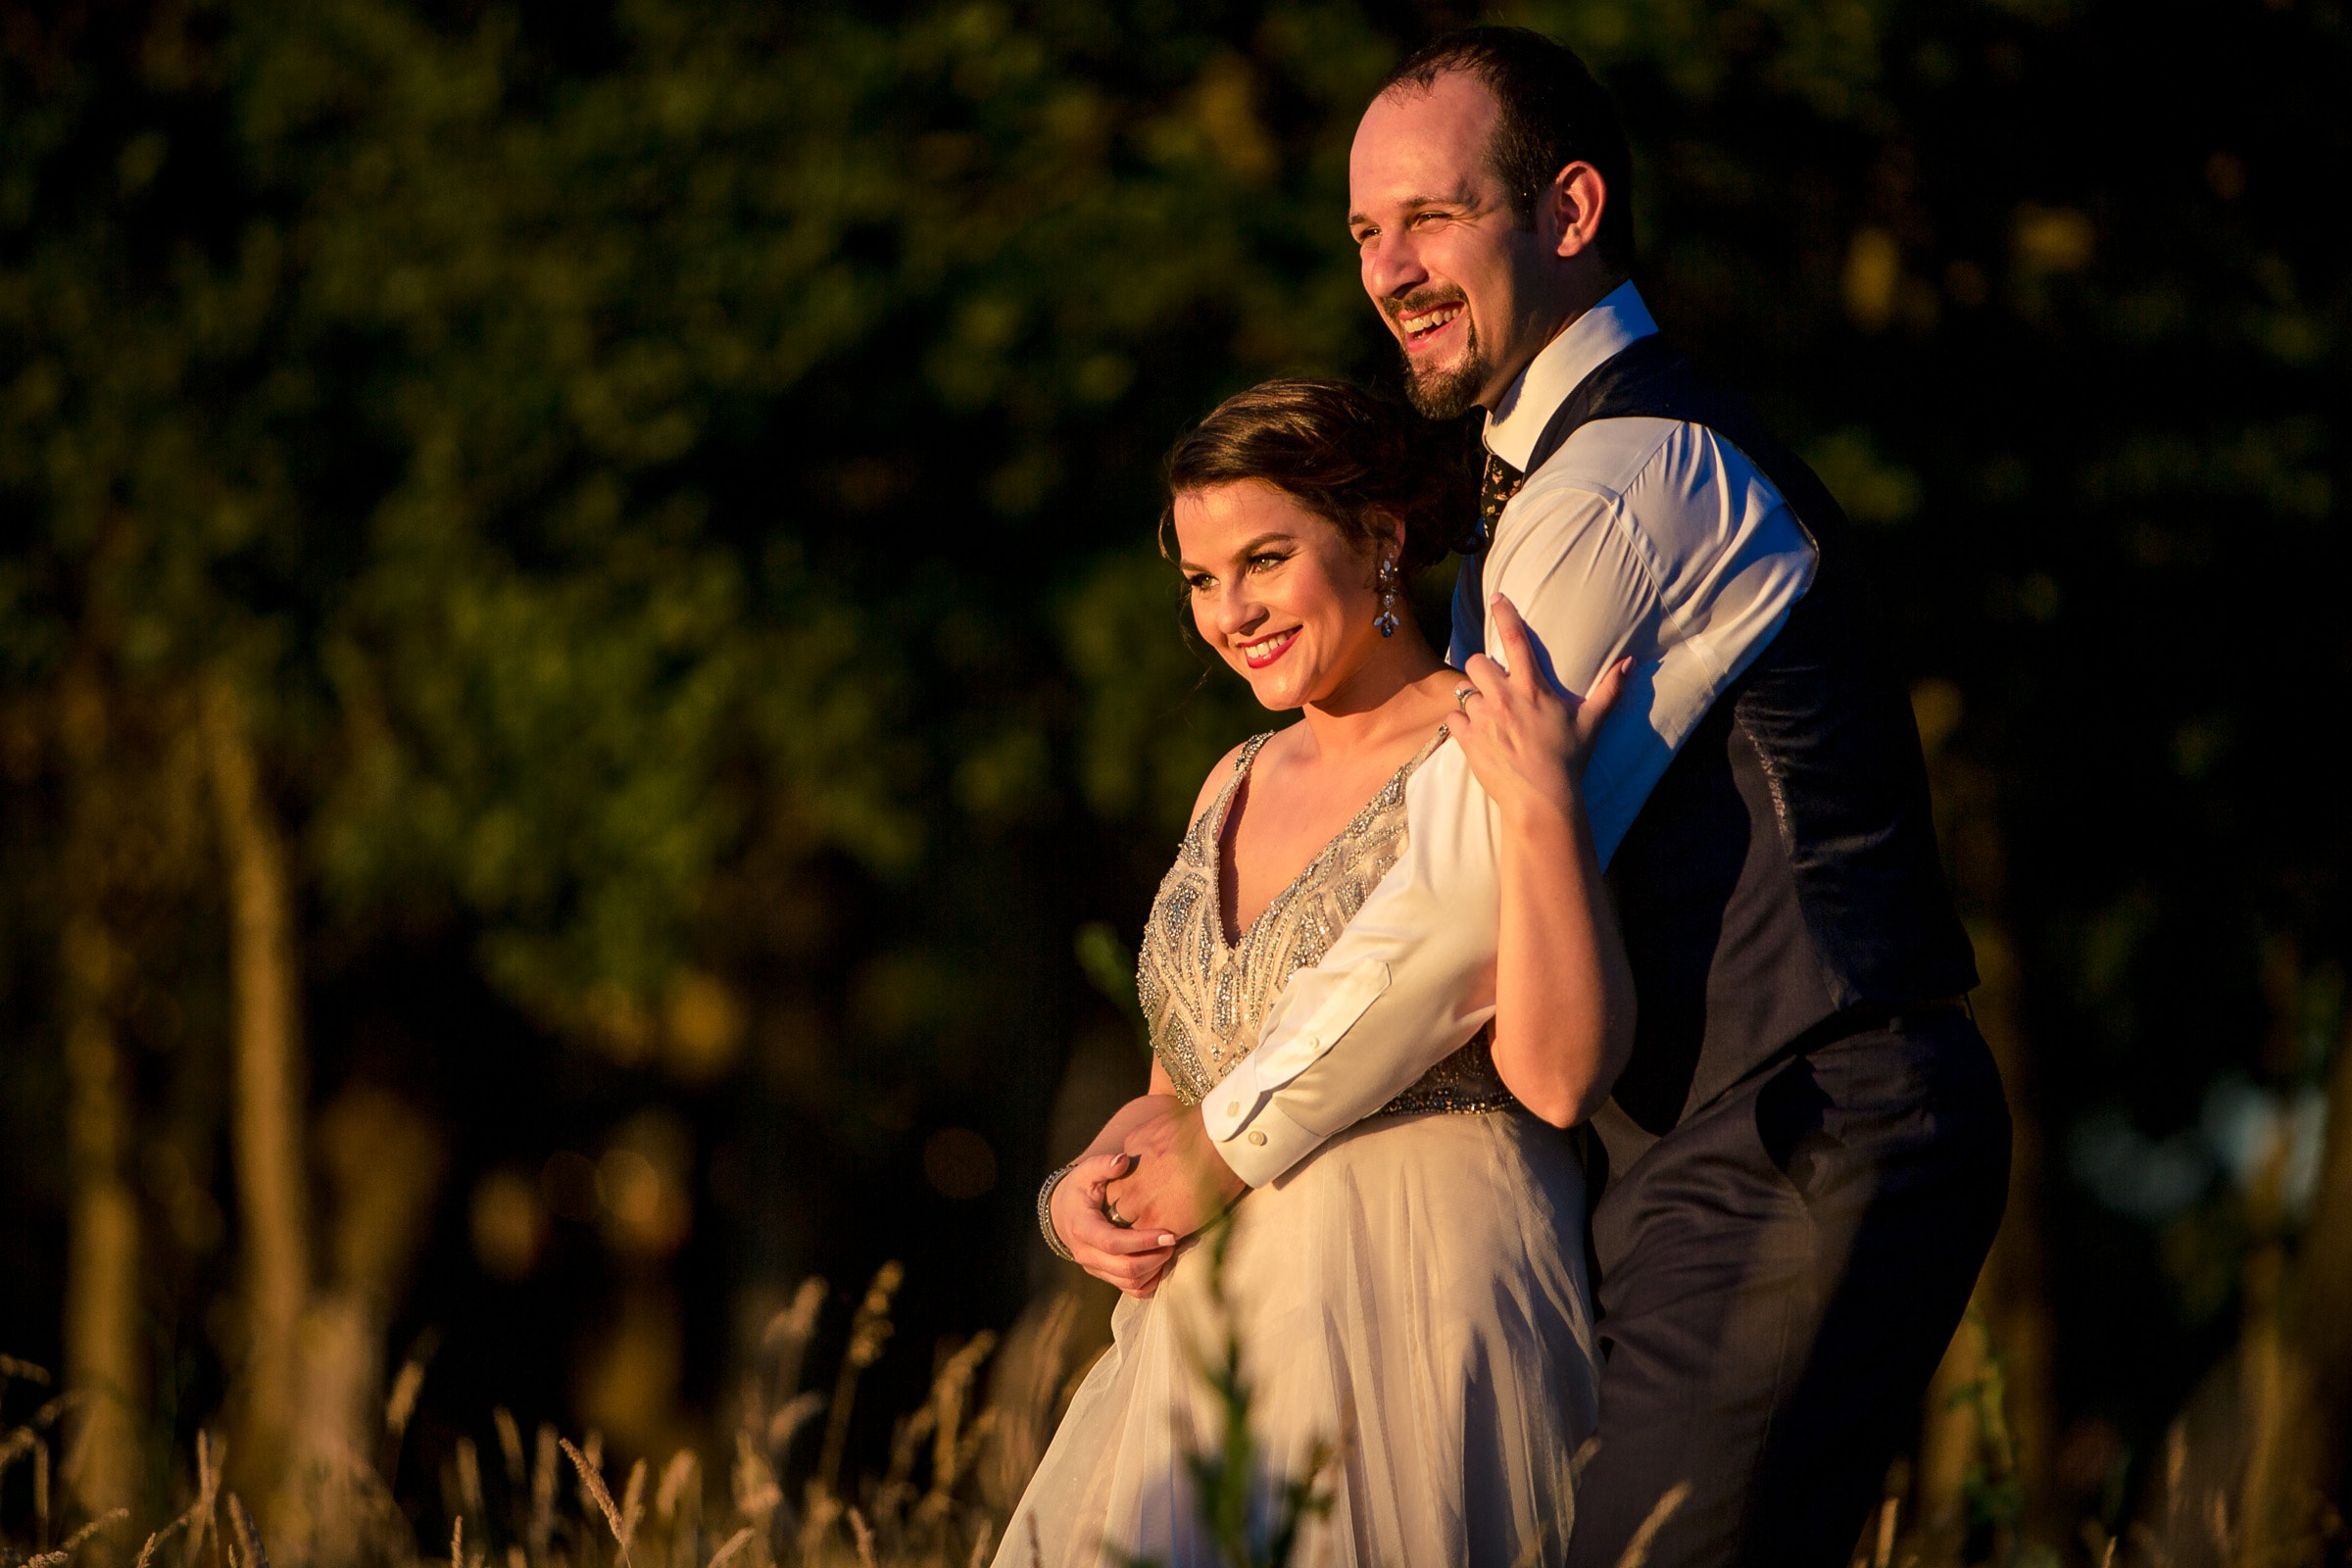 A beautiful bride and groom enjoying sunset during their Postlewait's Country wedding located in the heart of the Willamette Valley between Portland and Salem near Aurora, Oregon